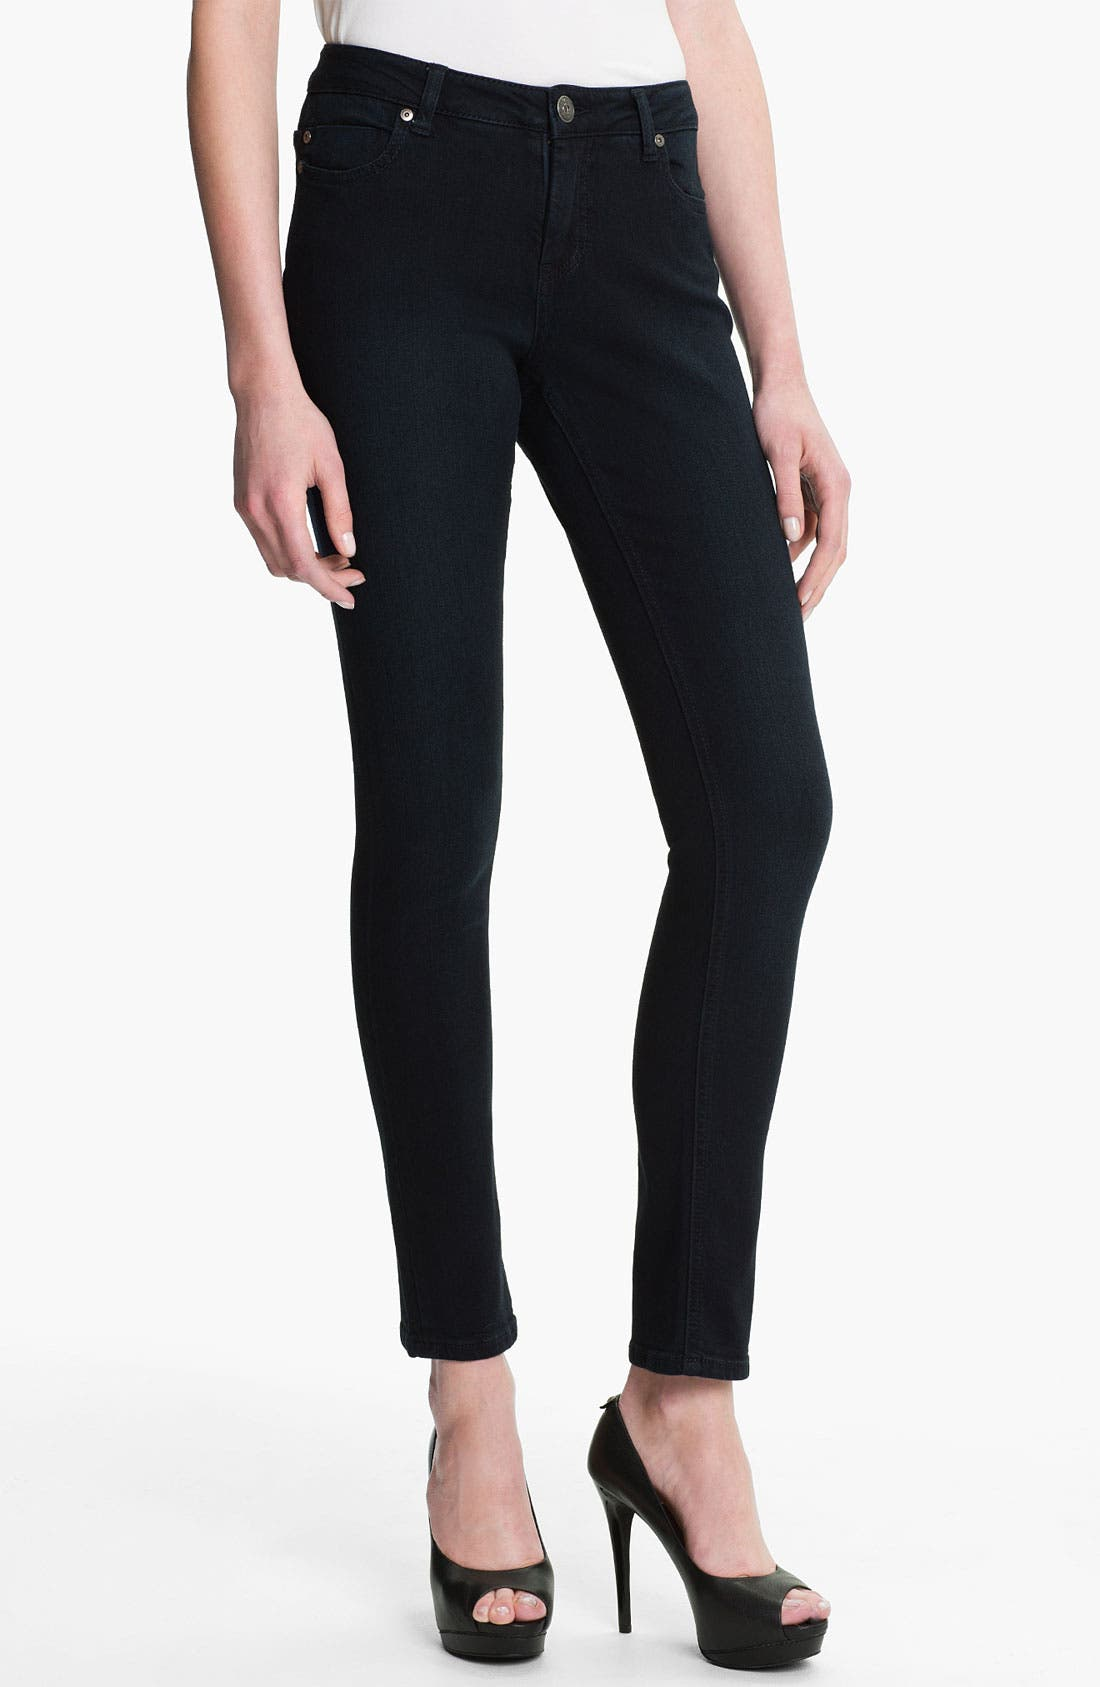 Main Image - Liverpool Jeans Company 'Madonna' Skinny Stretch Jeans